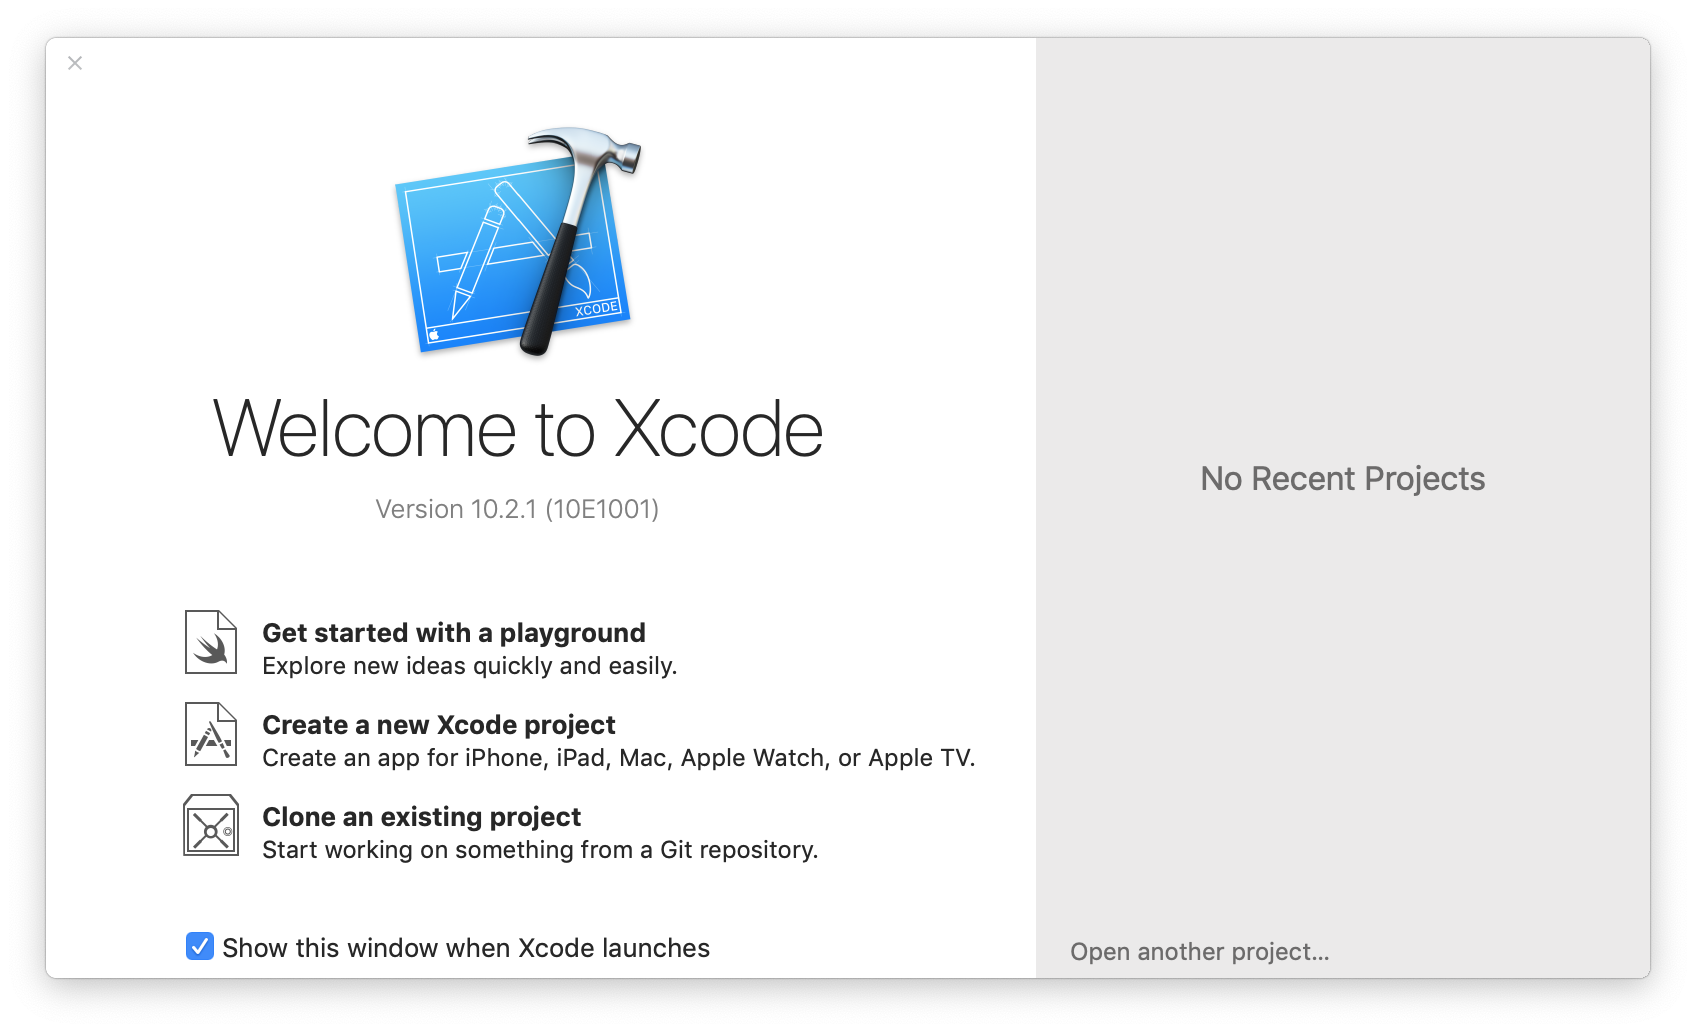 Welcome to Xcode window screenshot